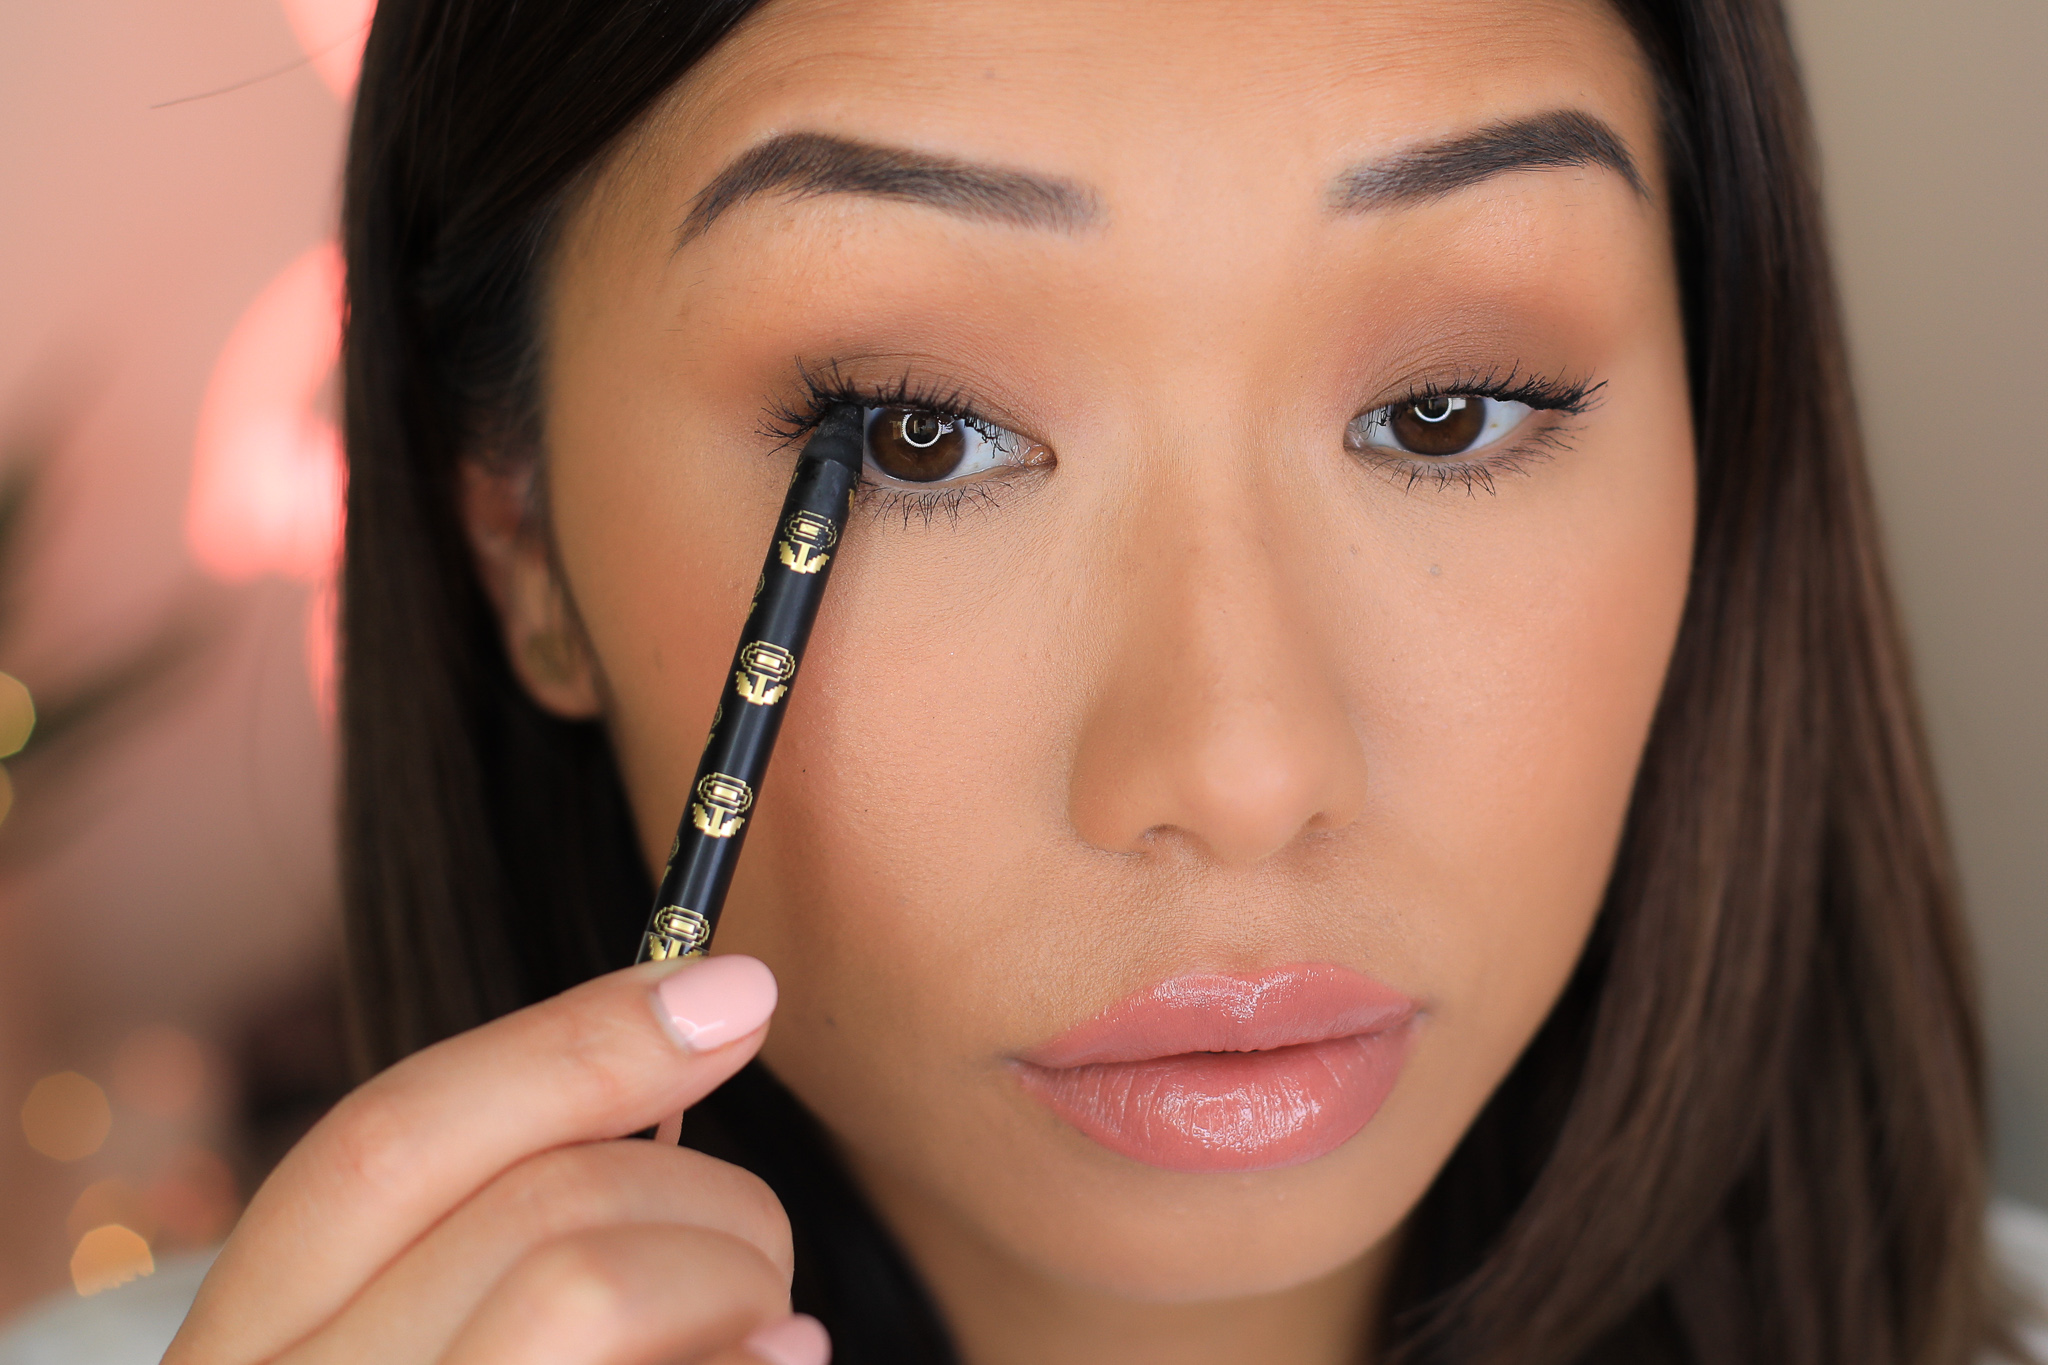 - Step 7: Tight line your upper water line to darken the lash line and create more depth, this gives the illusion of a fuller lash base!